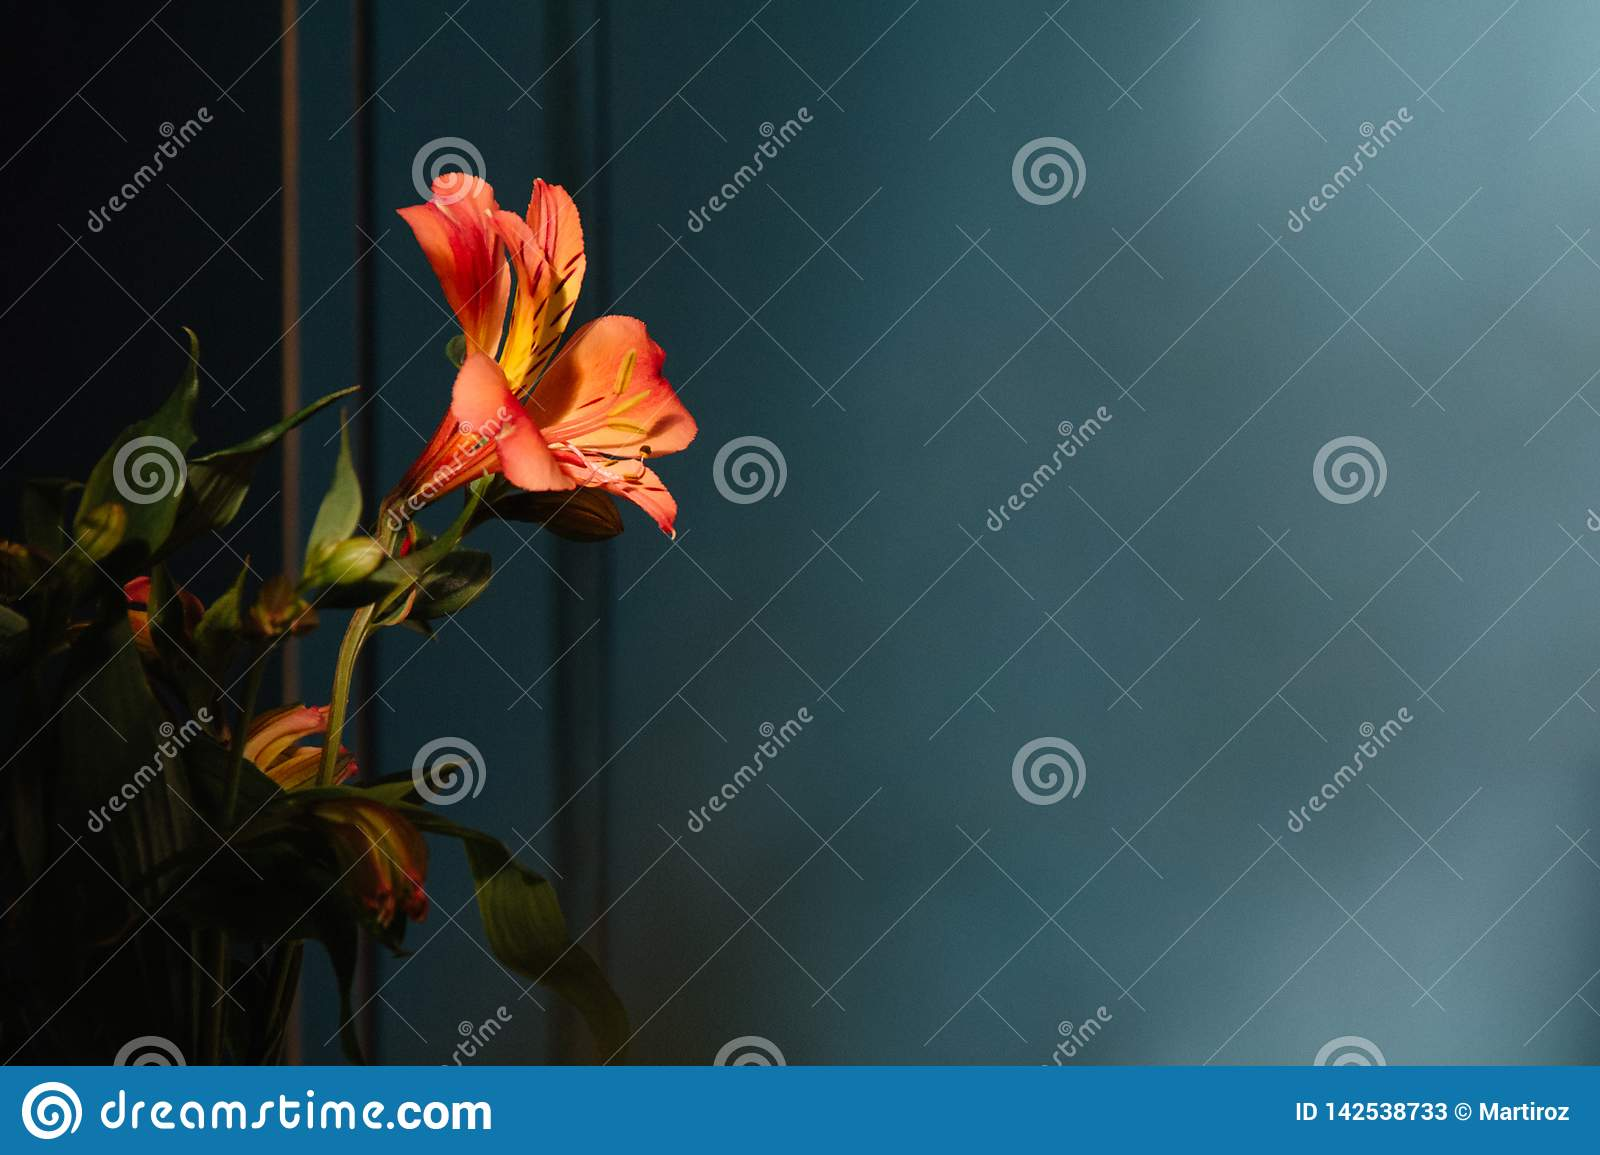 Lily flower on the dark background. Condolence card. Empty copy space